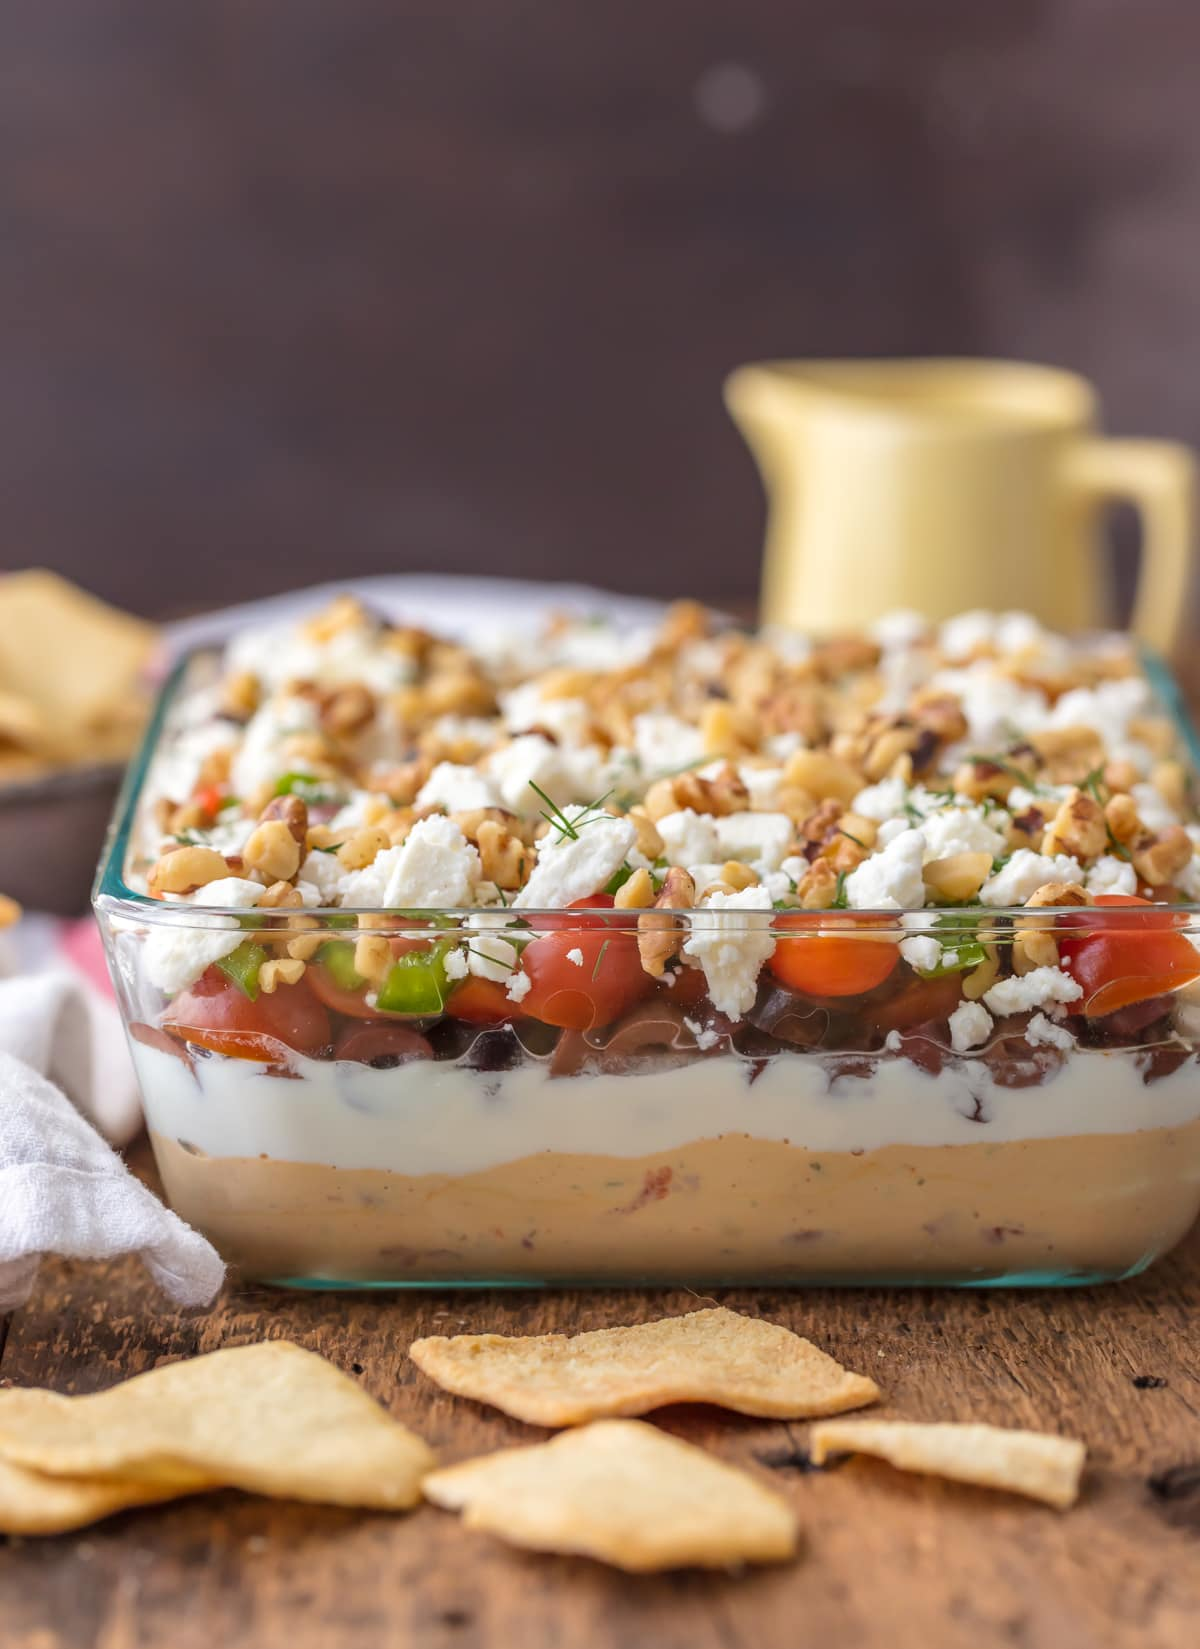 7 layer dip: hummus, yogurt, olives, tomatoes, peppers, feta, walnuts